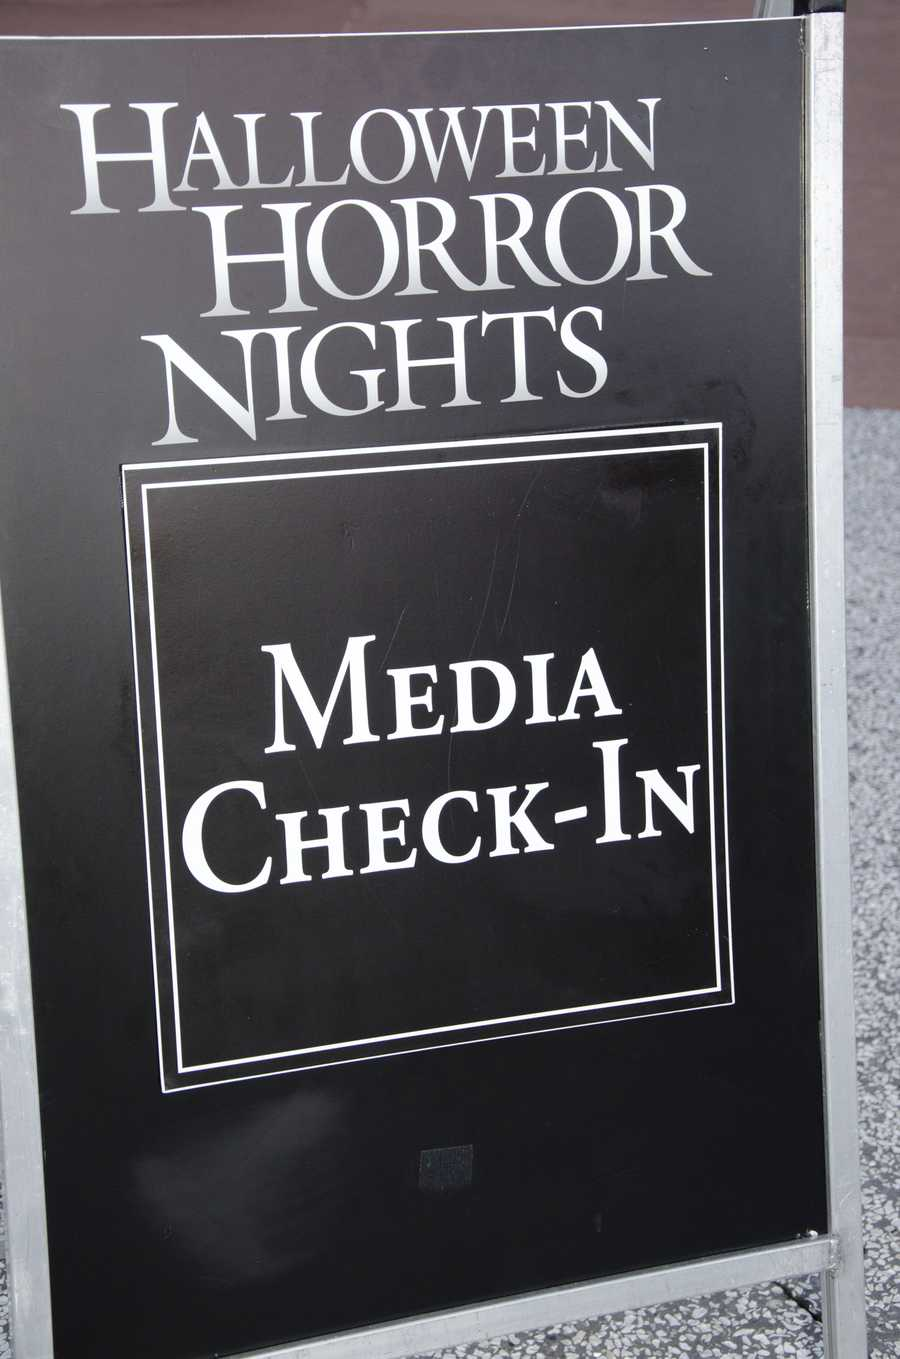 Universal Orlando invited the media to preview party for Halloween Horror Nights 23. The menu included some delightful, yet ghastly sounding desserts.